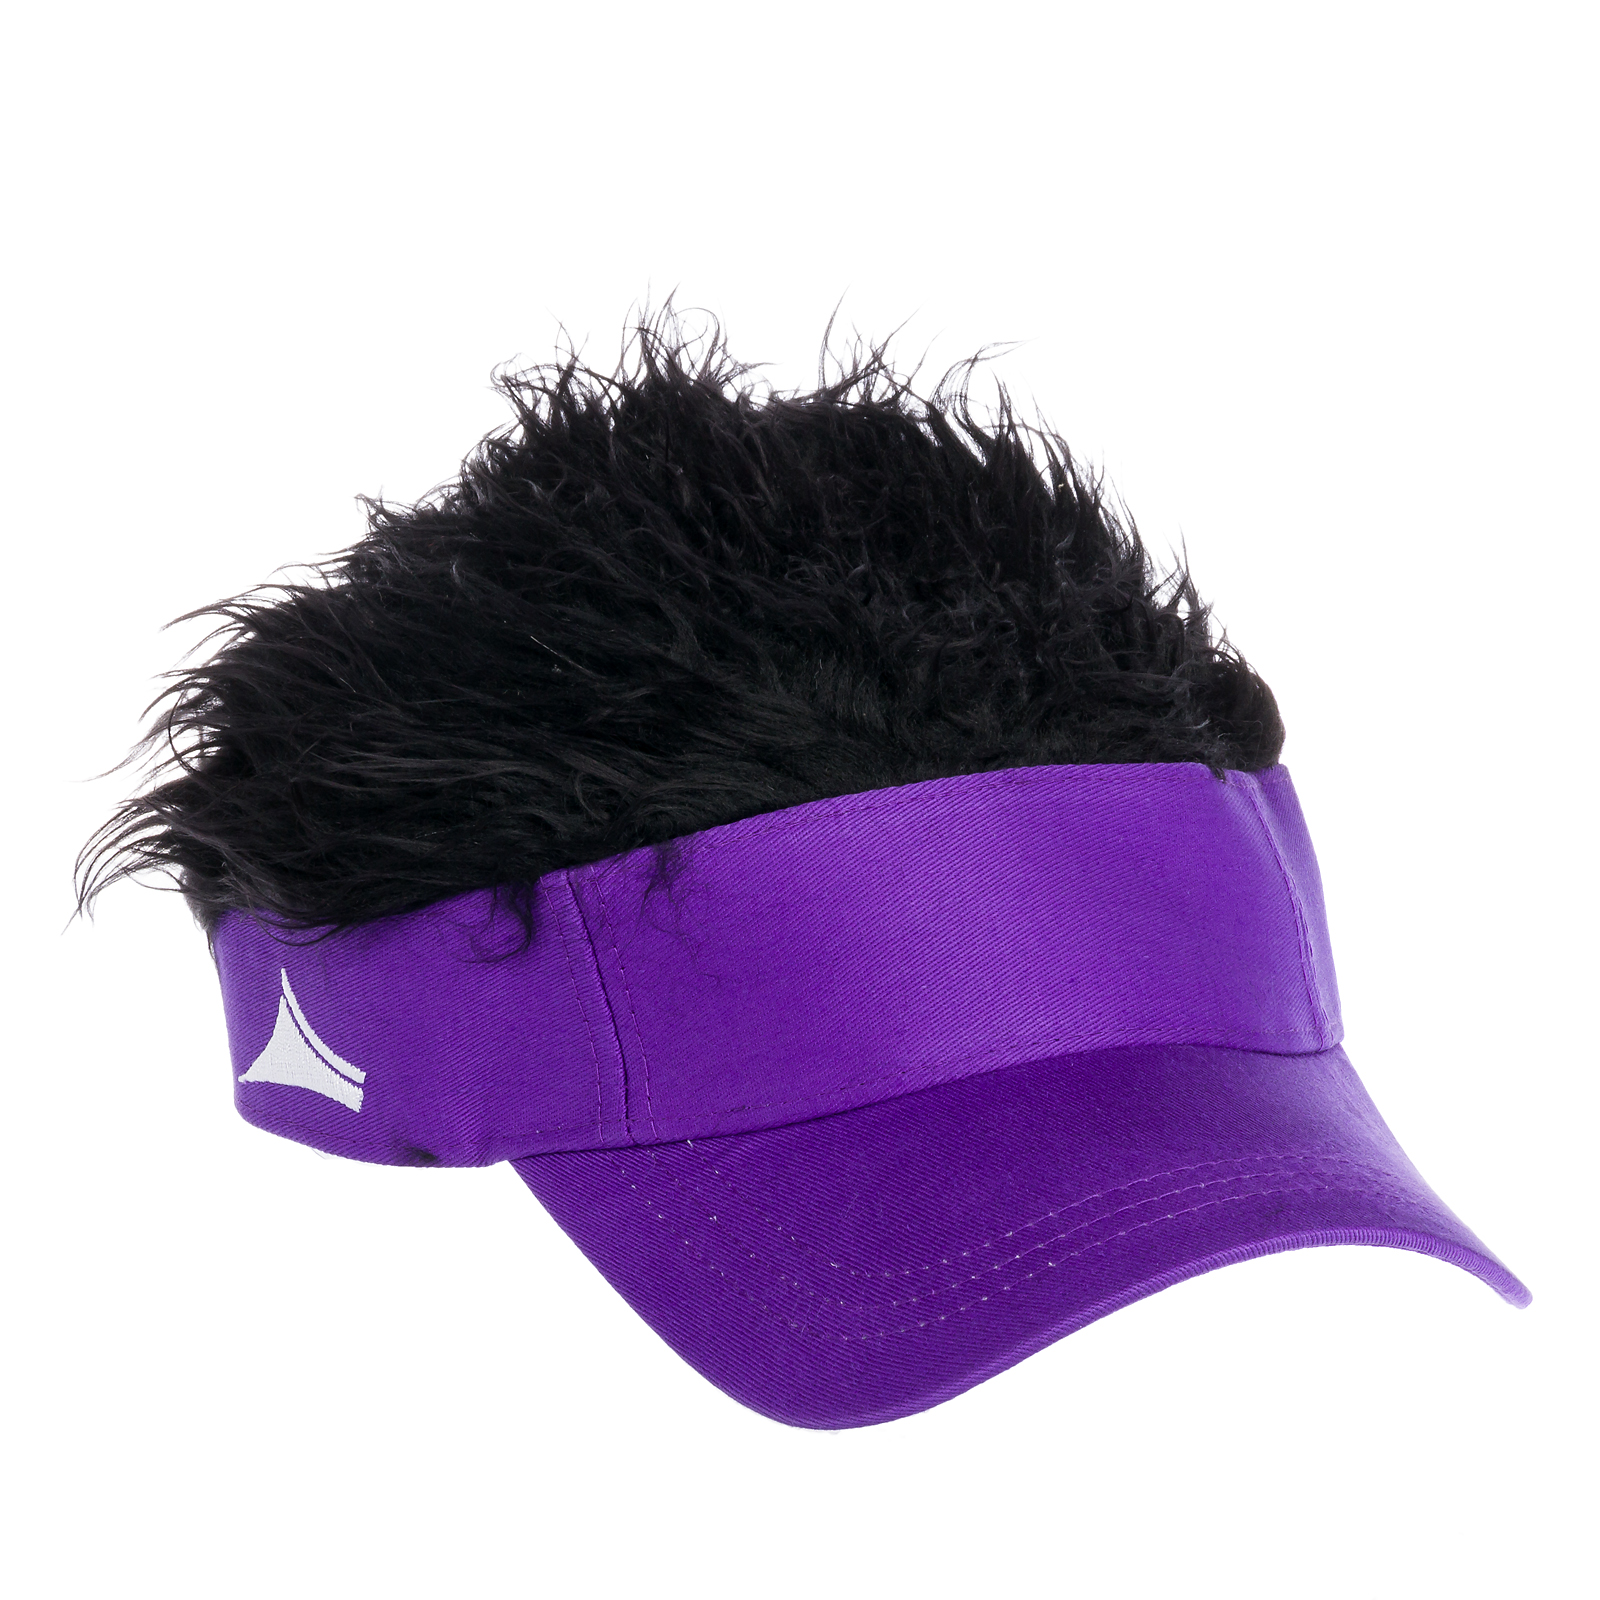 Flair Hair Black Hair Adjustable Visor Hat (Purple) - Walmart.com 5537c375827